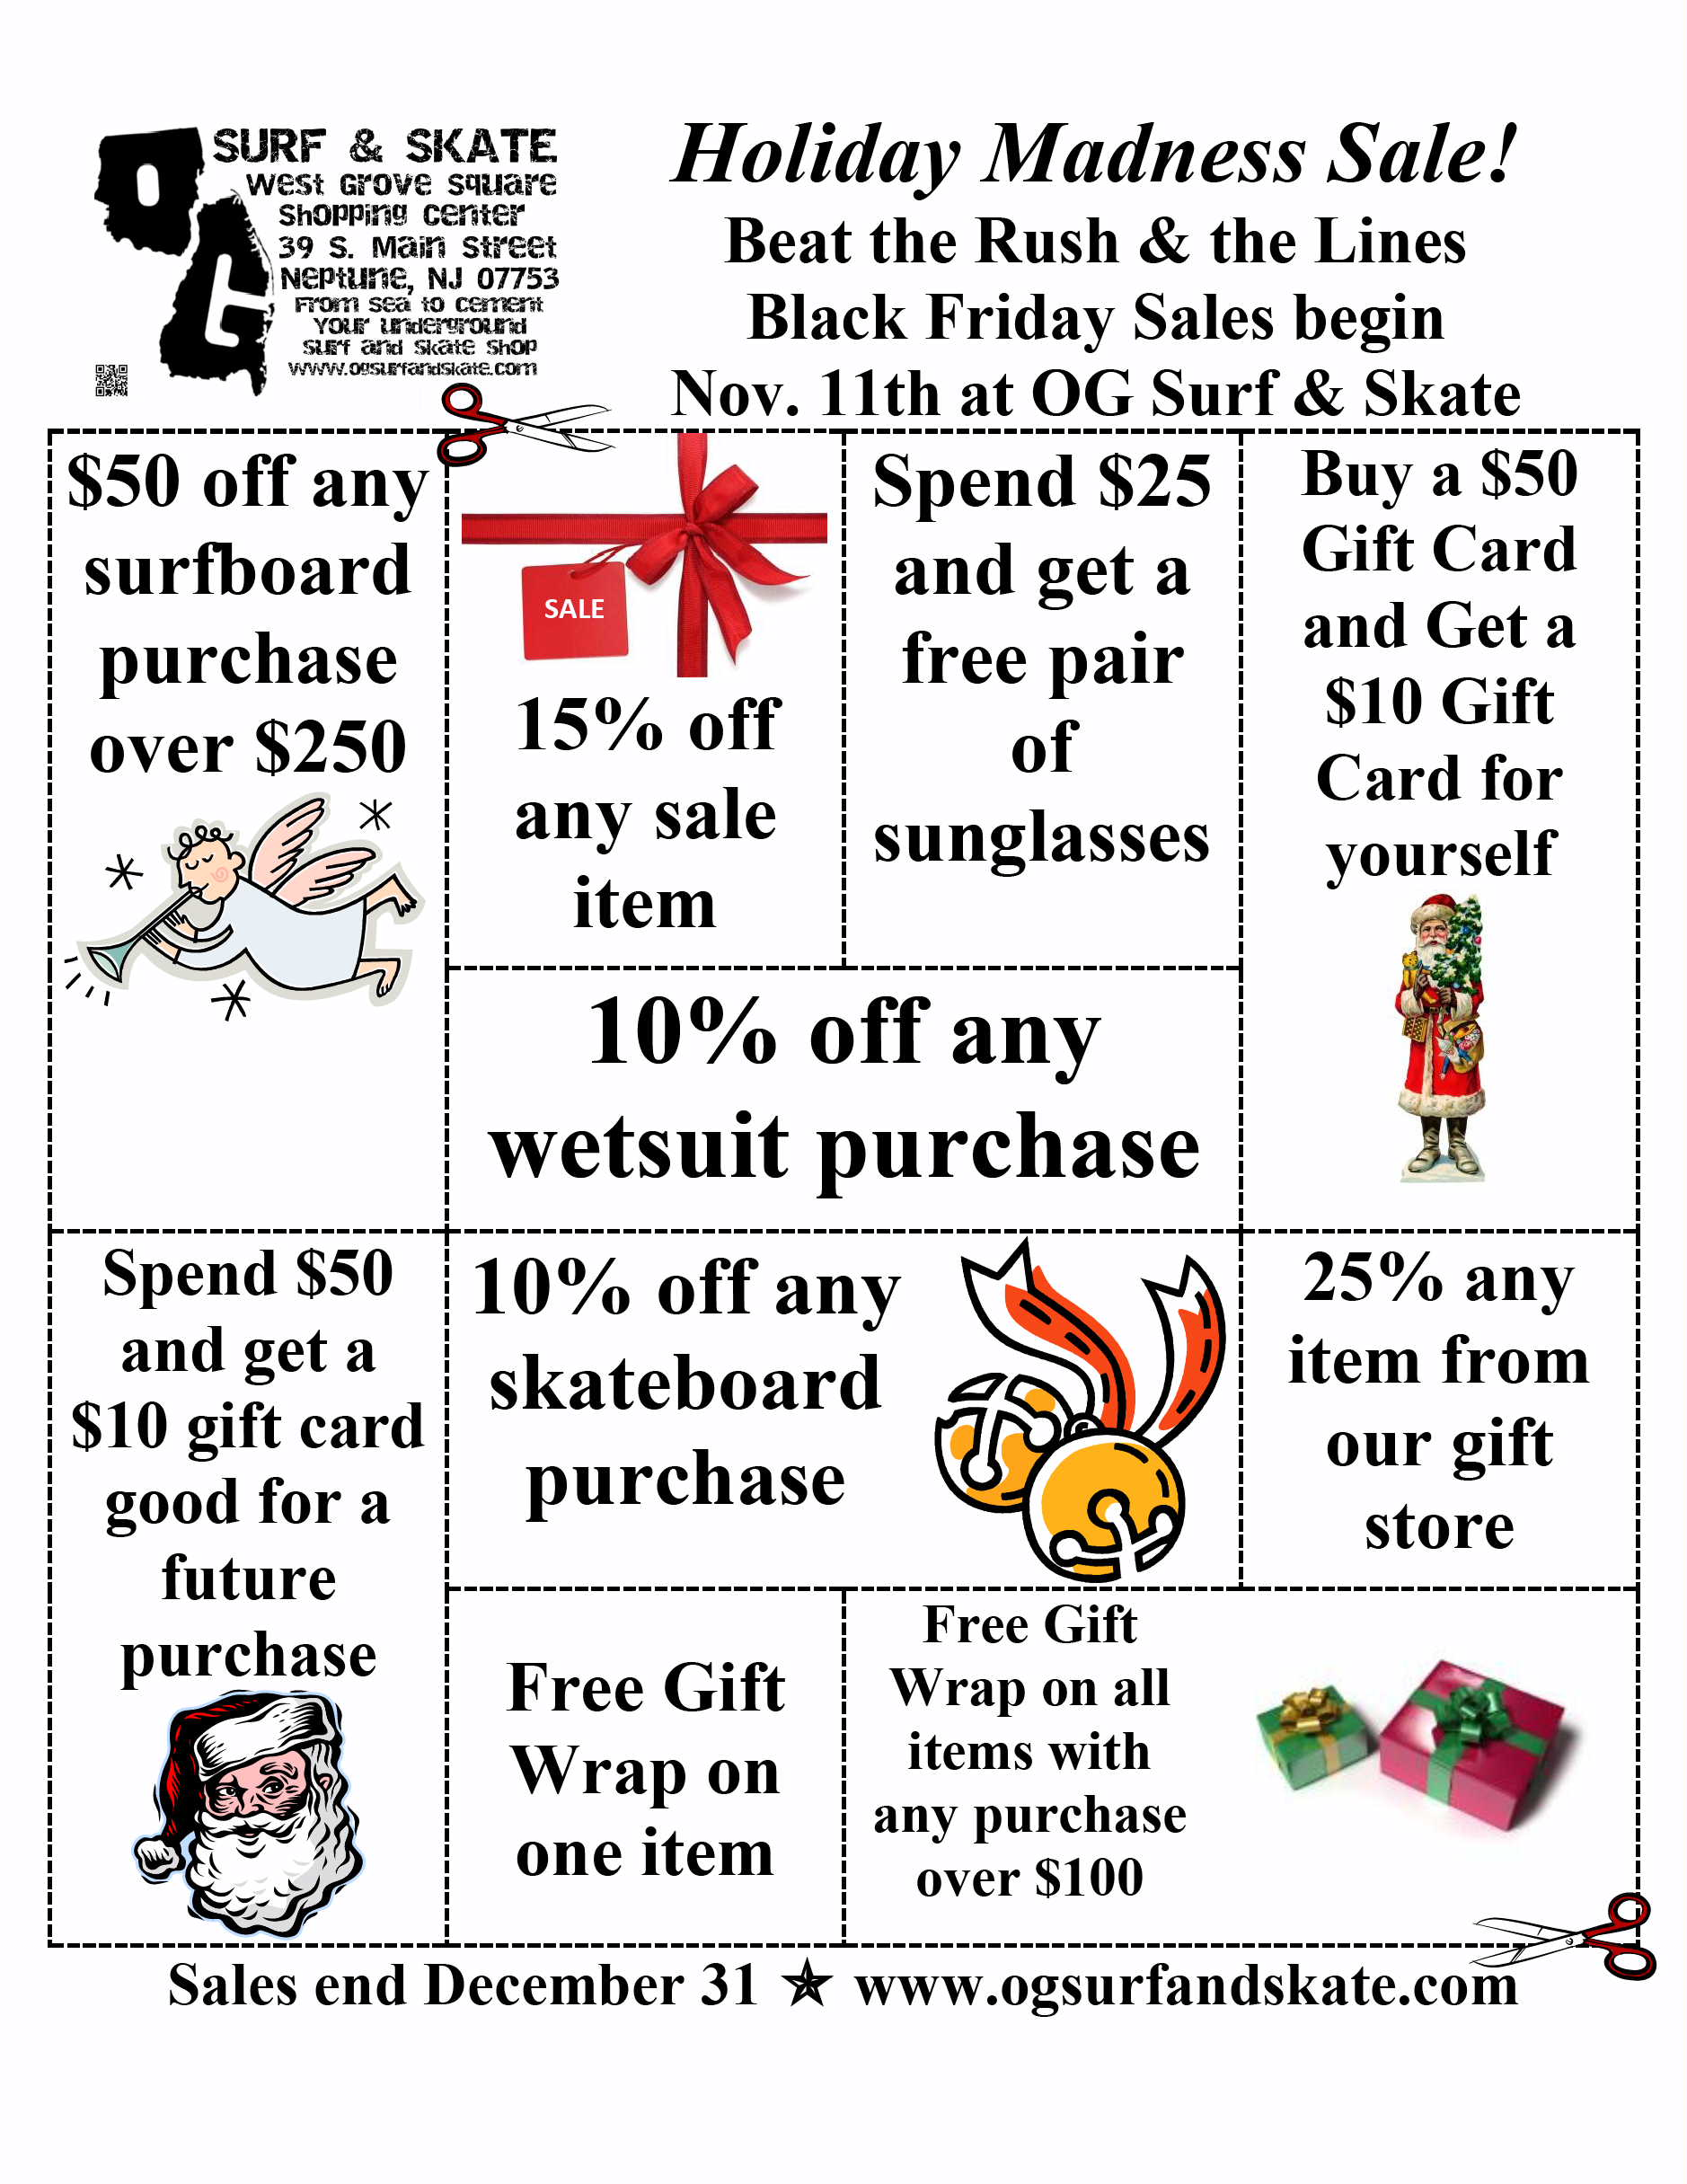 OG SURF AND SKATE Holiday Madness Sale